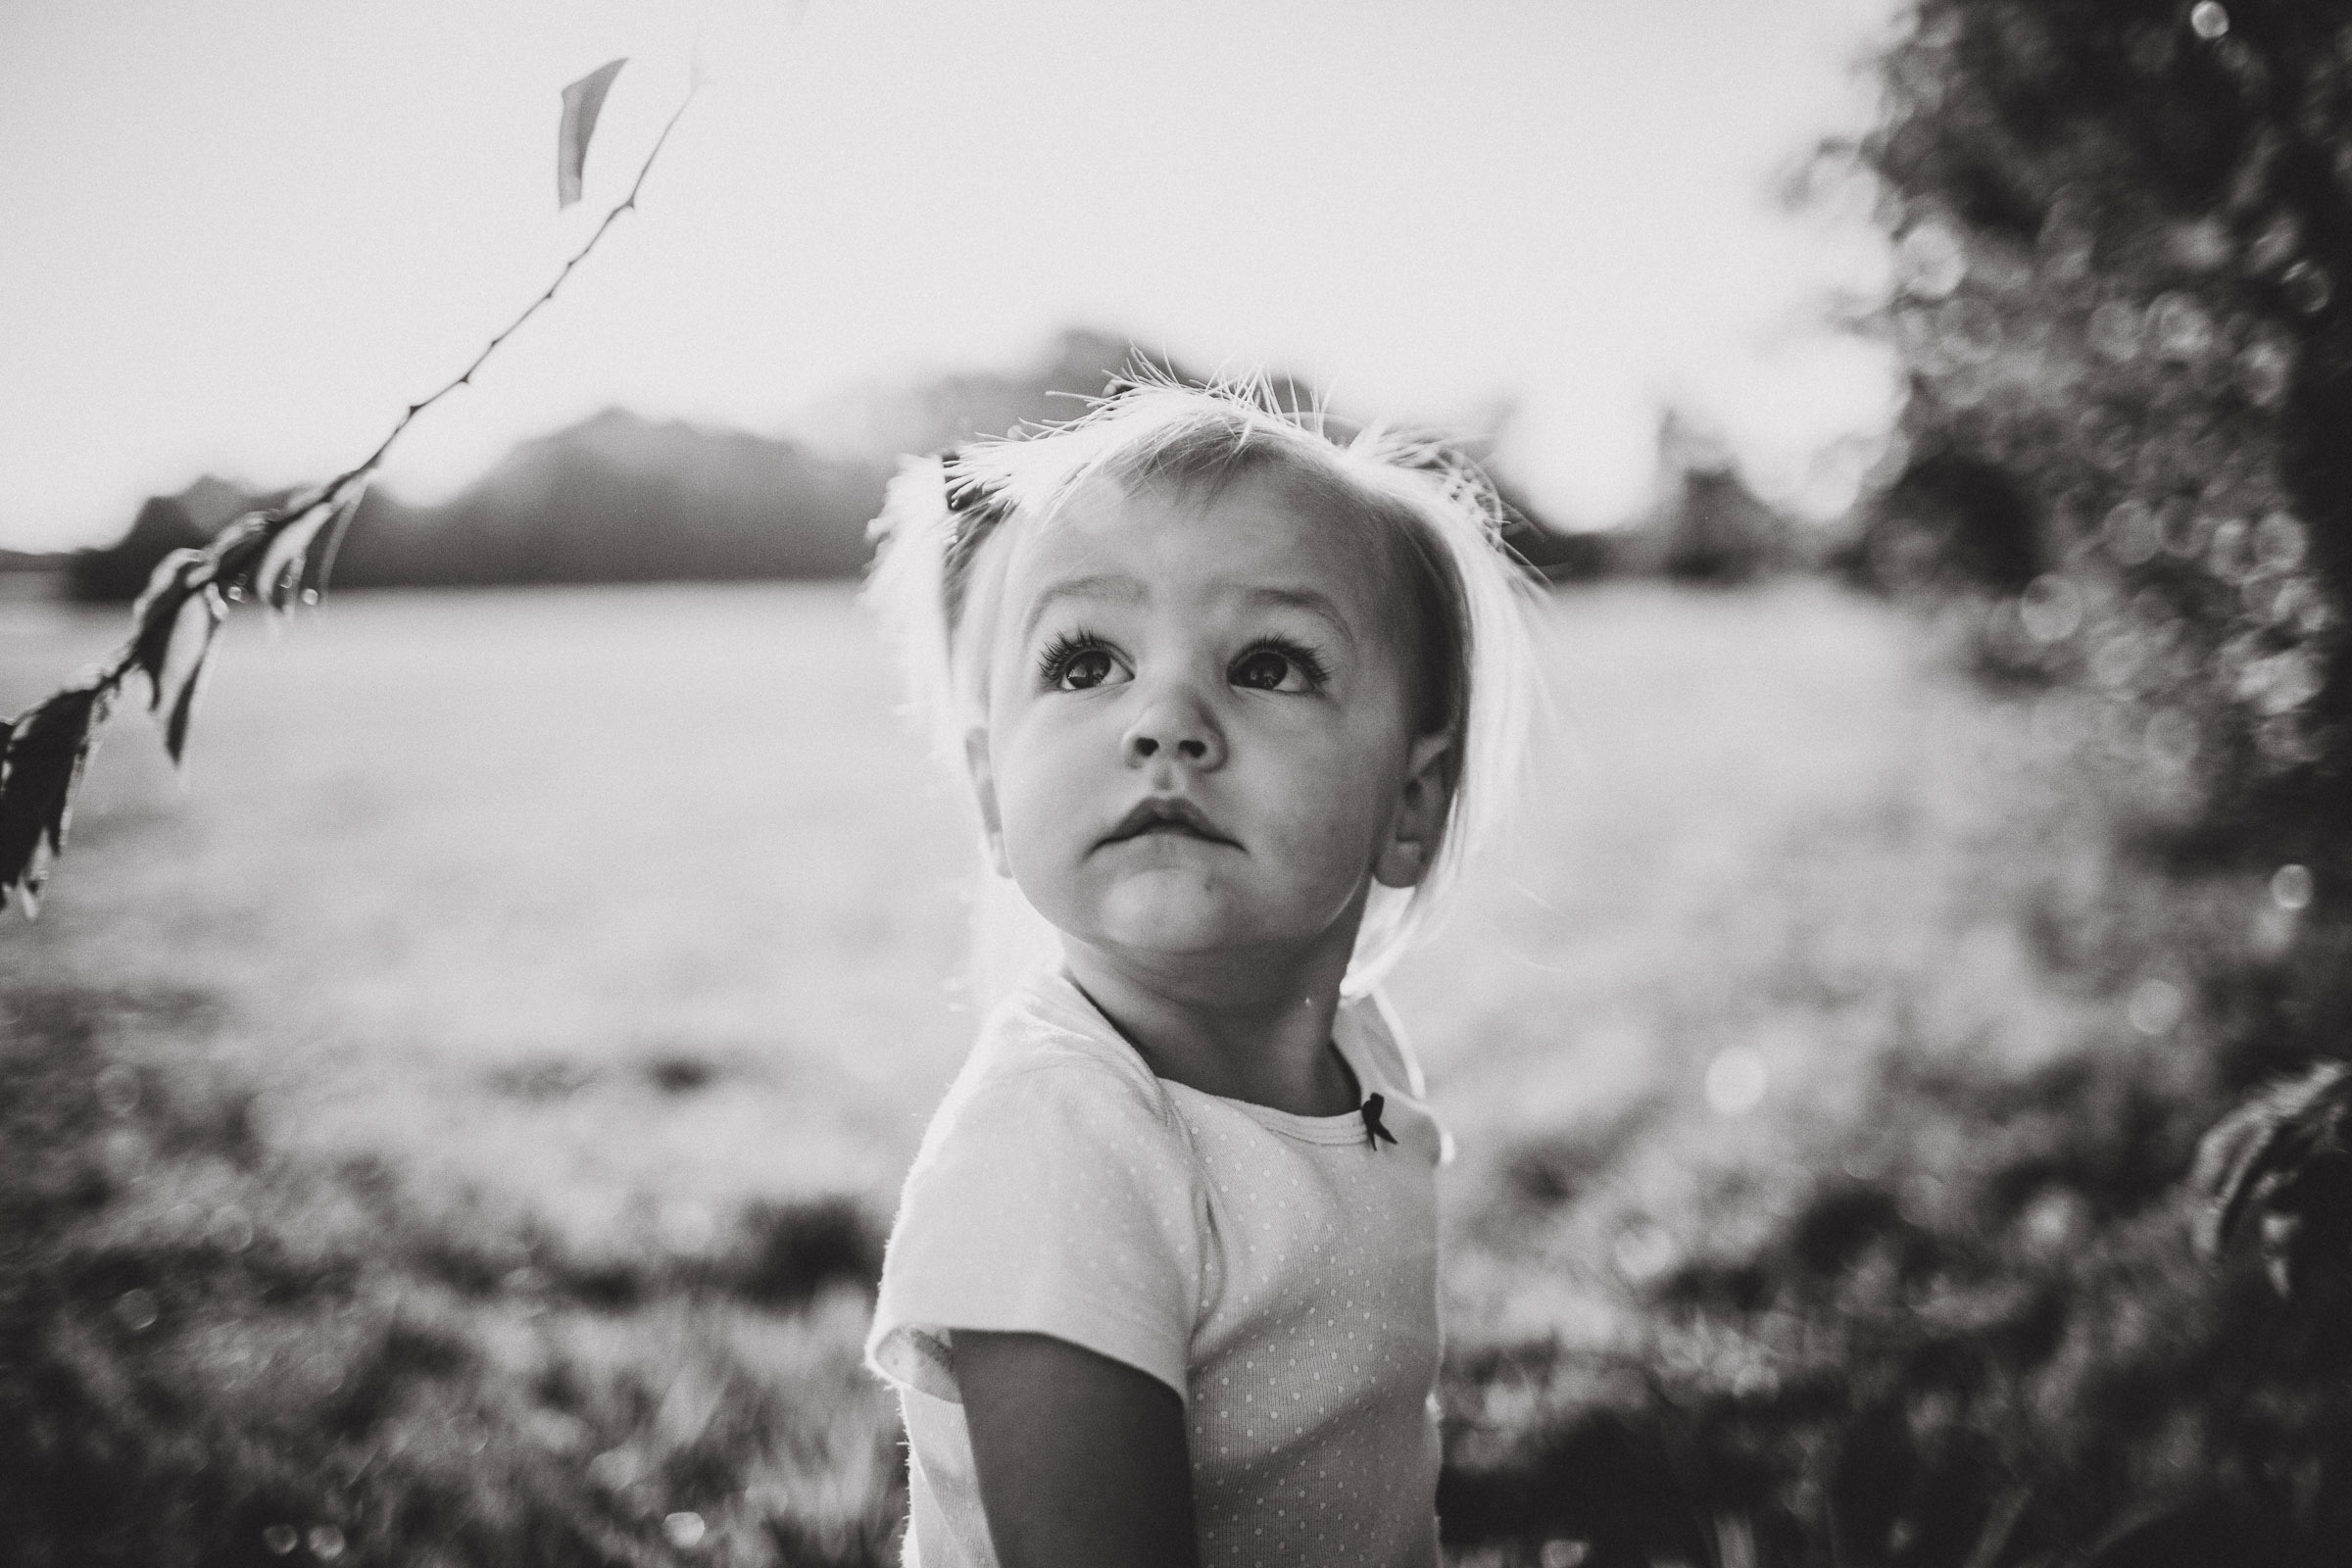 Black and White portrait of girl looking up at parents